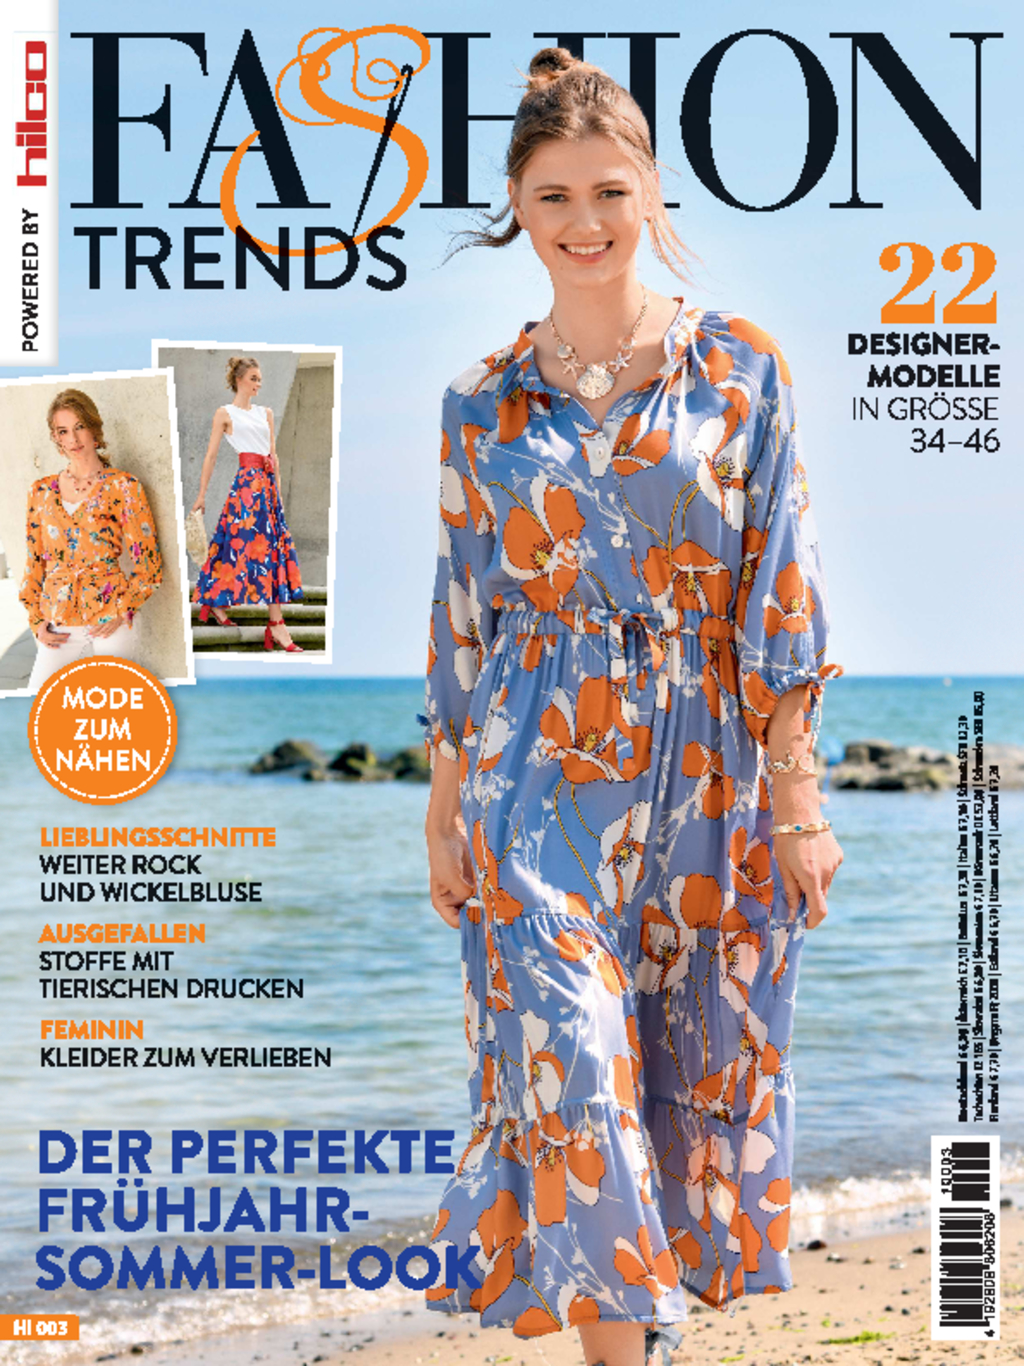 Fashion-Trends by Hilco HI003 - der perfekte Look